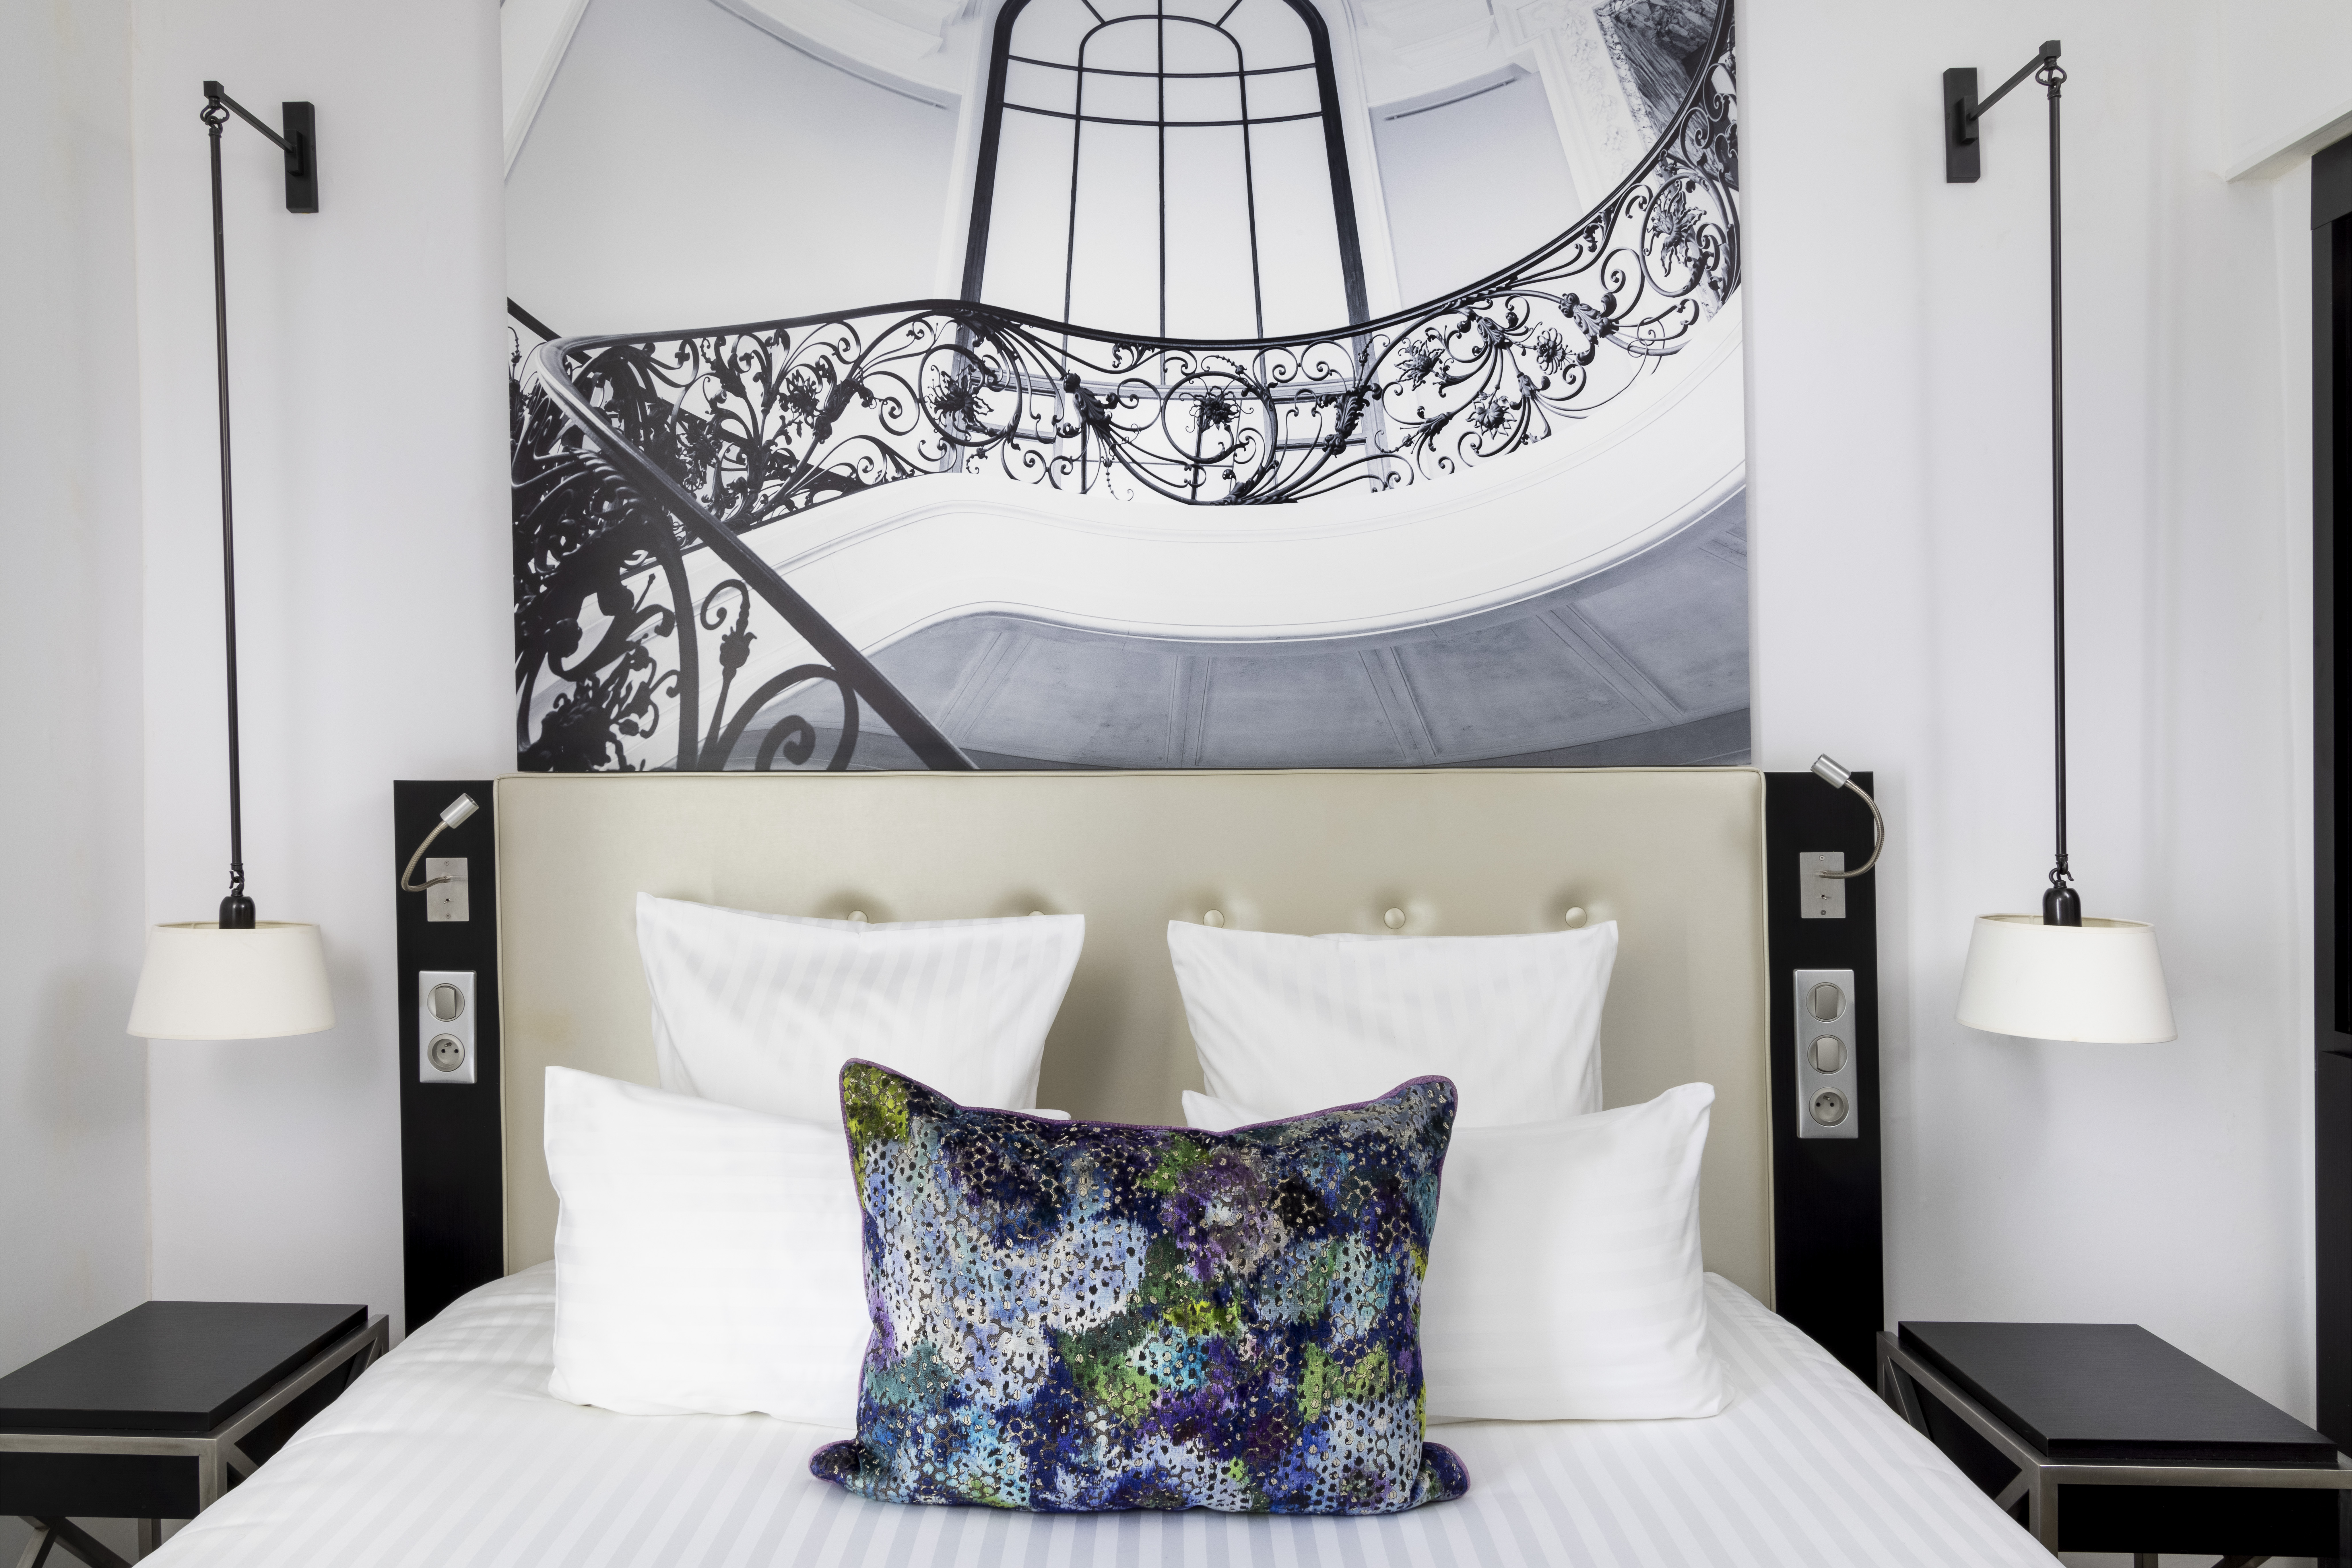 723/Gustave/chambre_/Trd/_16A6259_hotel_gustave_md.jpg